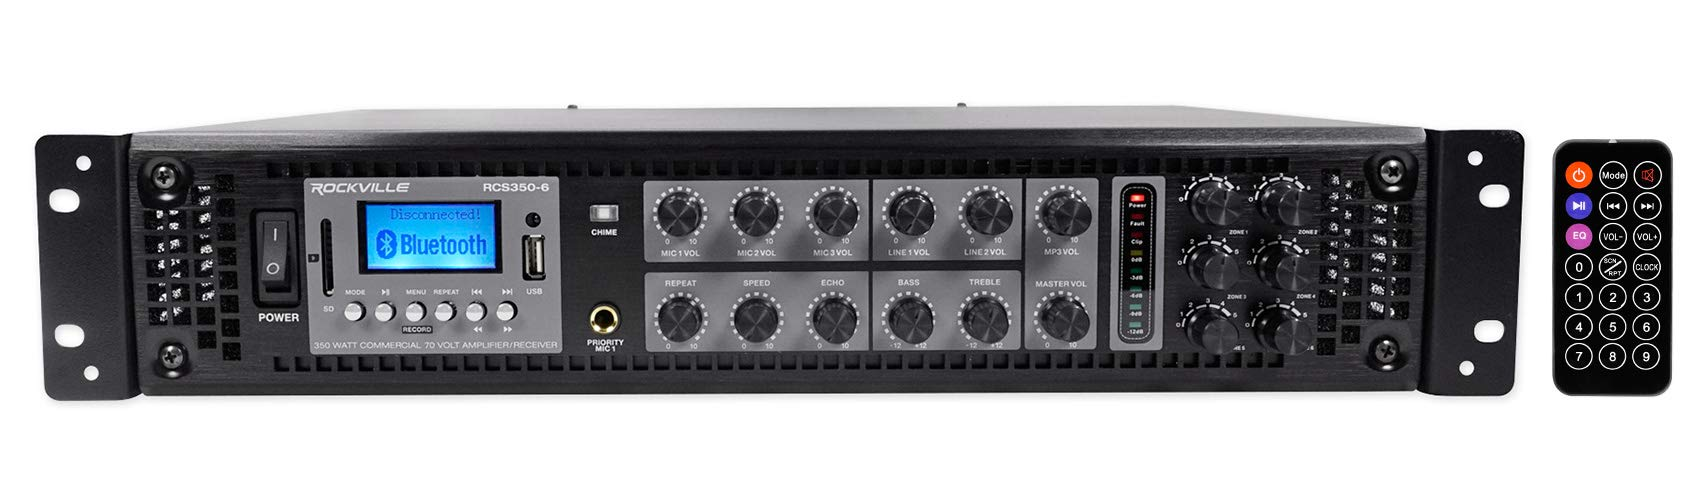 Rockville RCS350-6 350 Watt 6 Zone 70V Commercial/Restaurant Amplifier/Bluetooth by Rockville